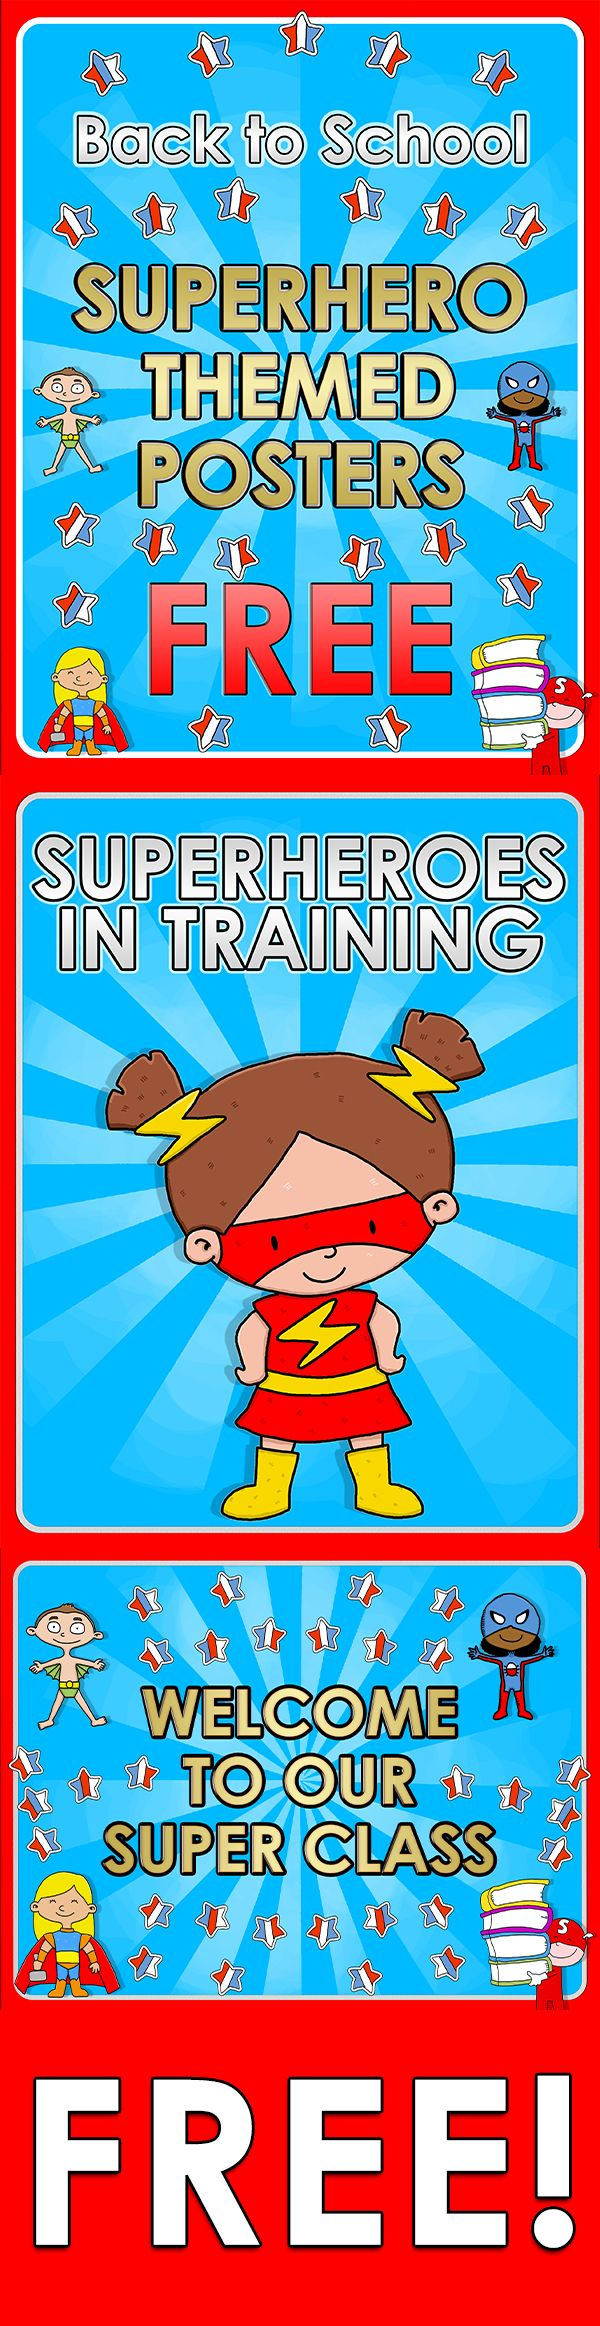 Back to School - Superhero themed posters - FREE  Here you are 2 FREE posters for your super classroom